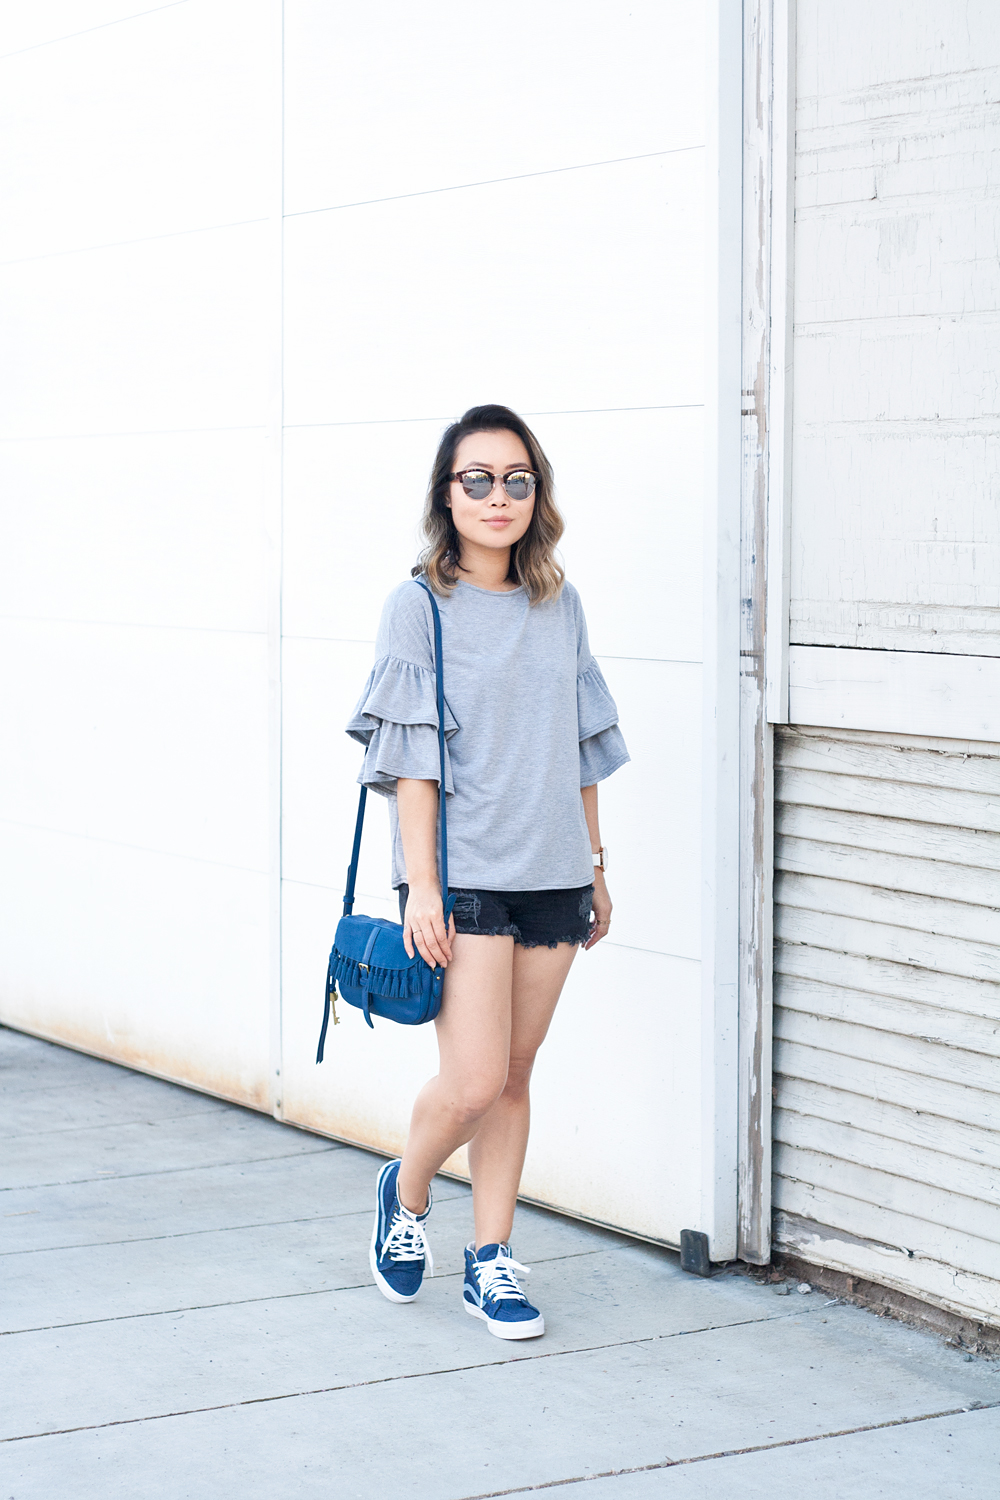 04fossil-blue-madewell-vans-denim-sf-fashion-style